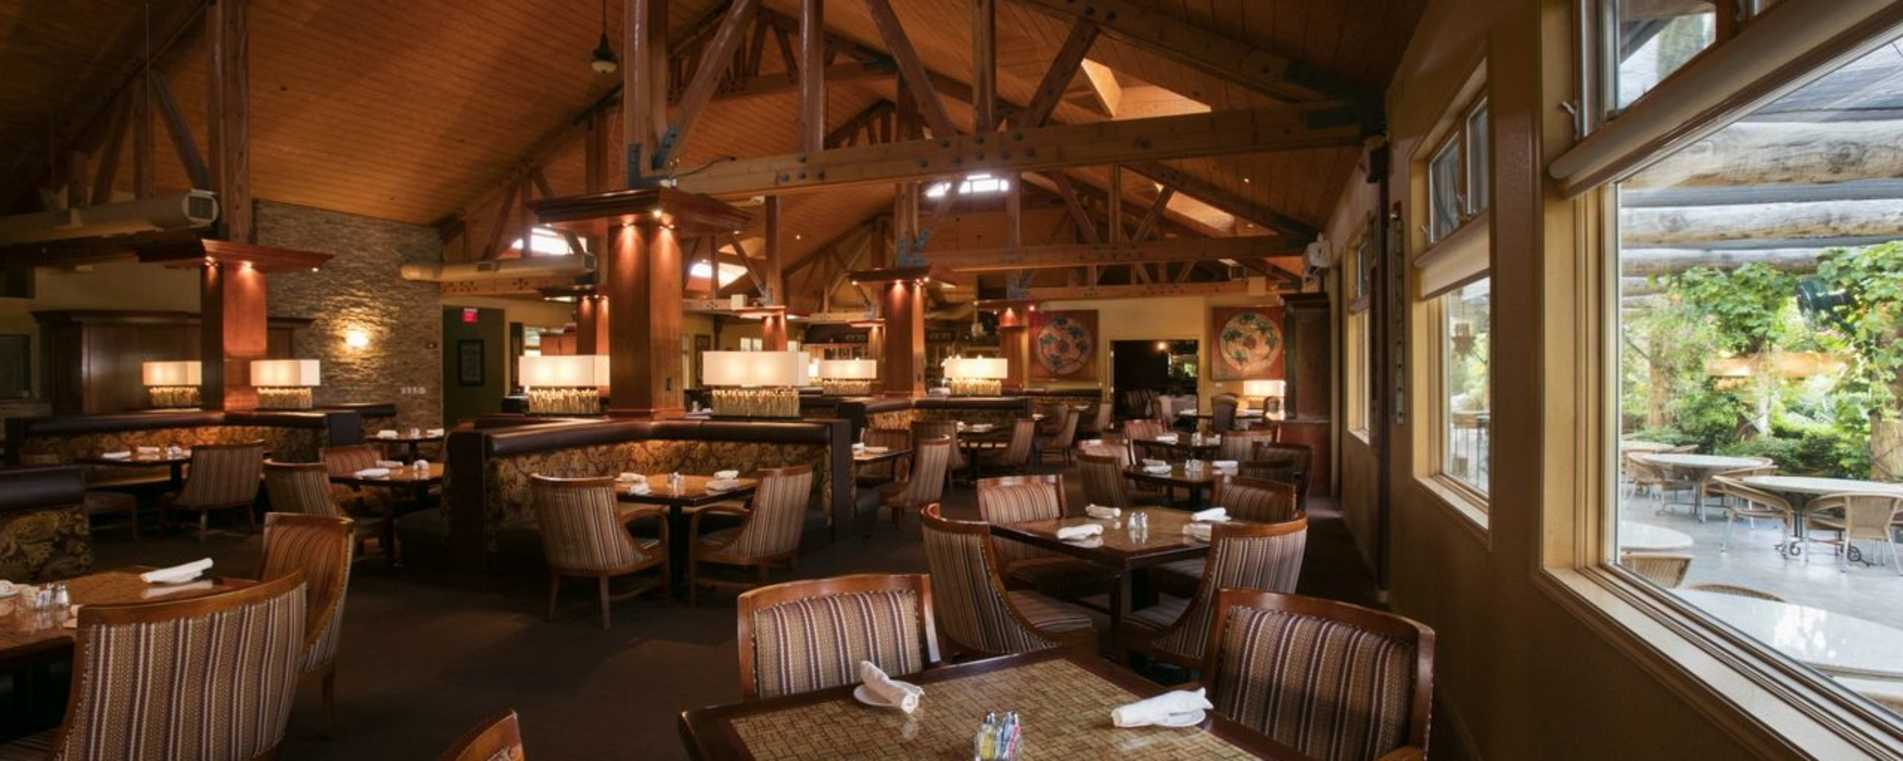 The Vineyard Rose Restaurant - South Coast Winery Resort & Spa